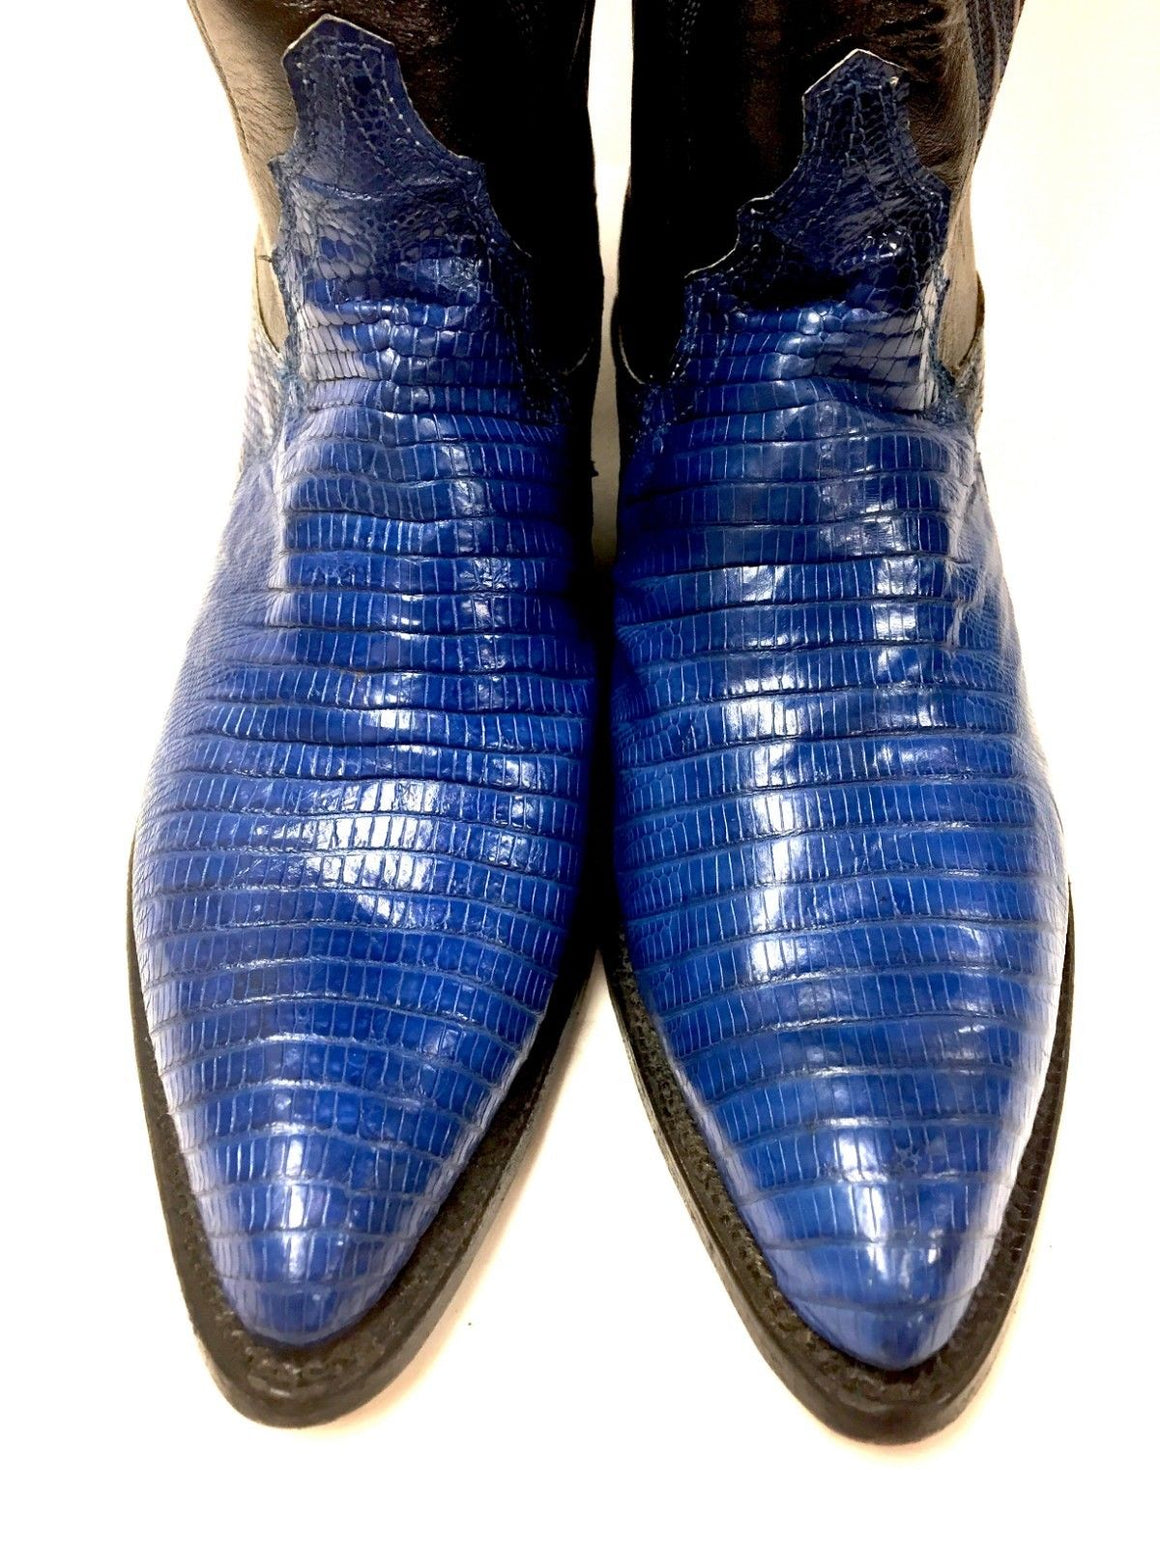 JUSTIN Black Leather Cobalt-Blue Lizard Skin  Women Cowboy Pull-On Boots Size: 7B